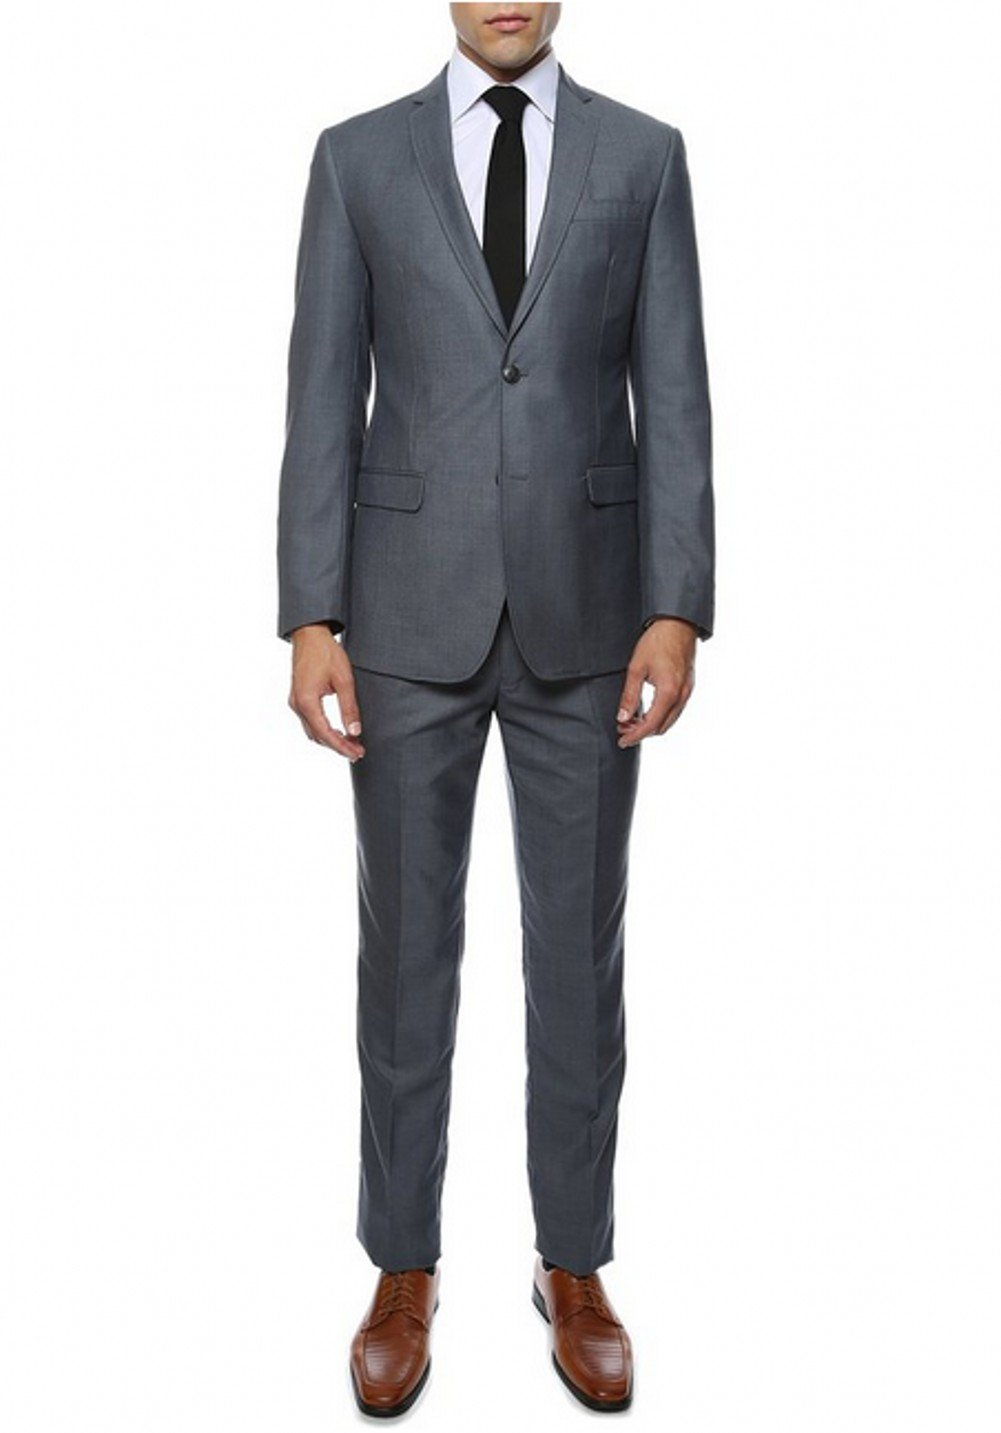 AK Beauty Men's Suit Two Buttons Groom Tuxedos Includes Jacket and Pants XXXXXL